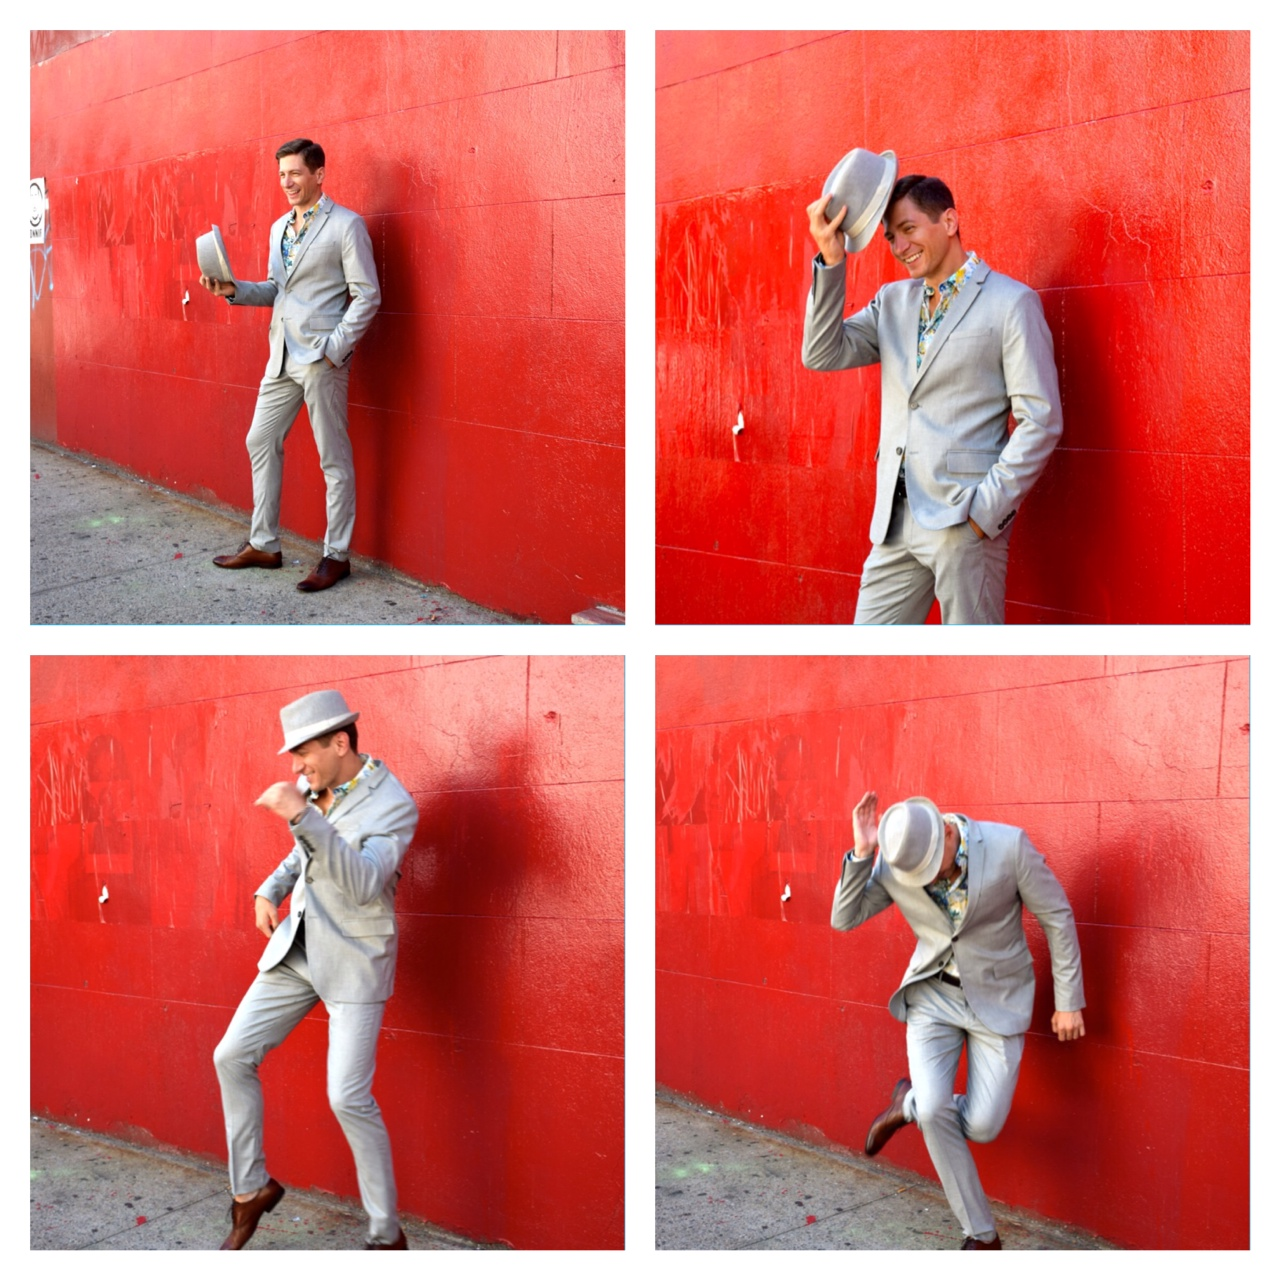 Oh yeah, did I mention we had fun on this photo shoot. The boy can dance!